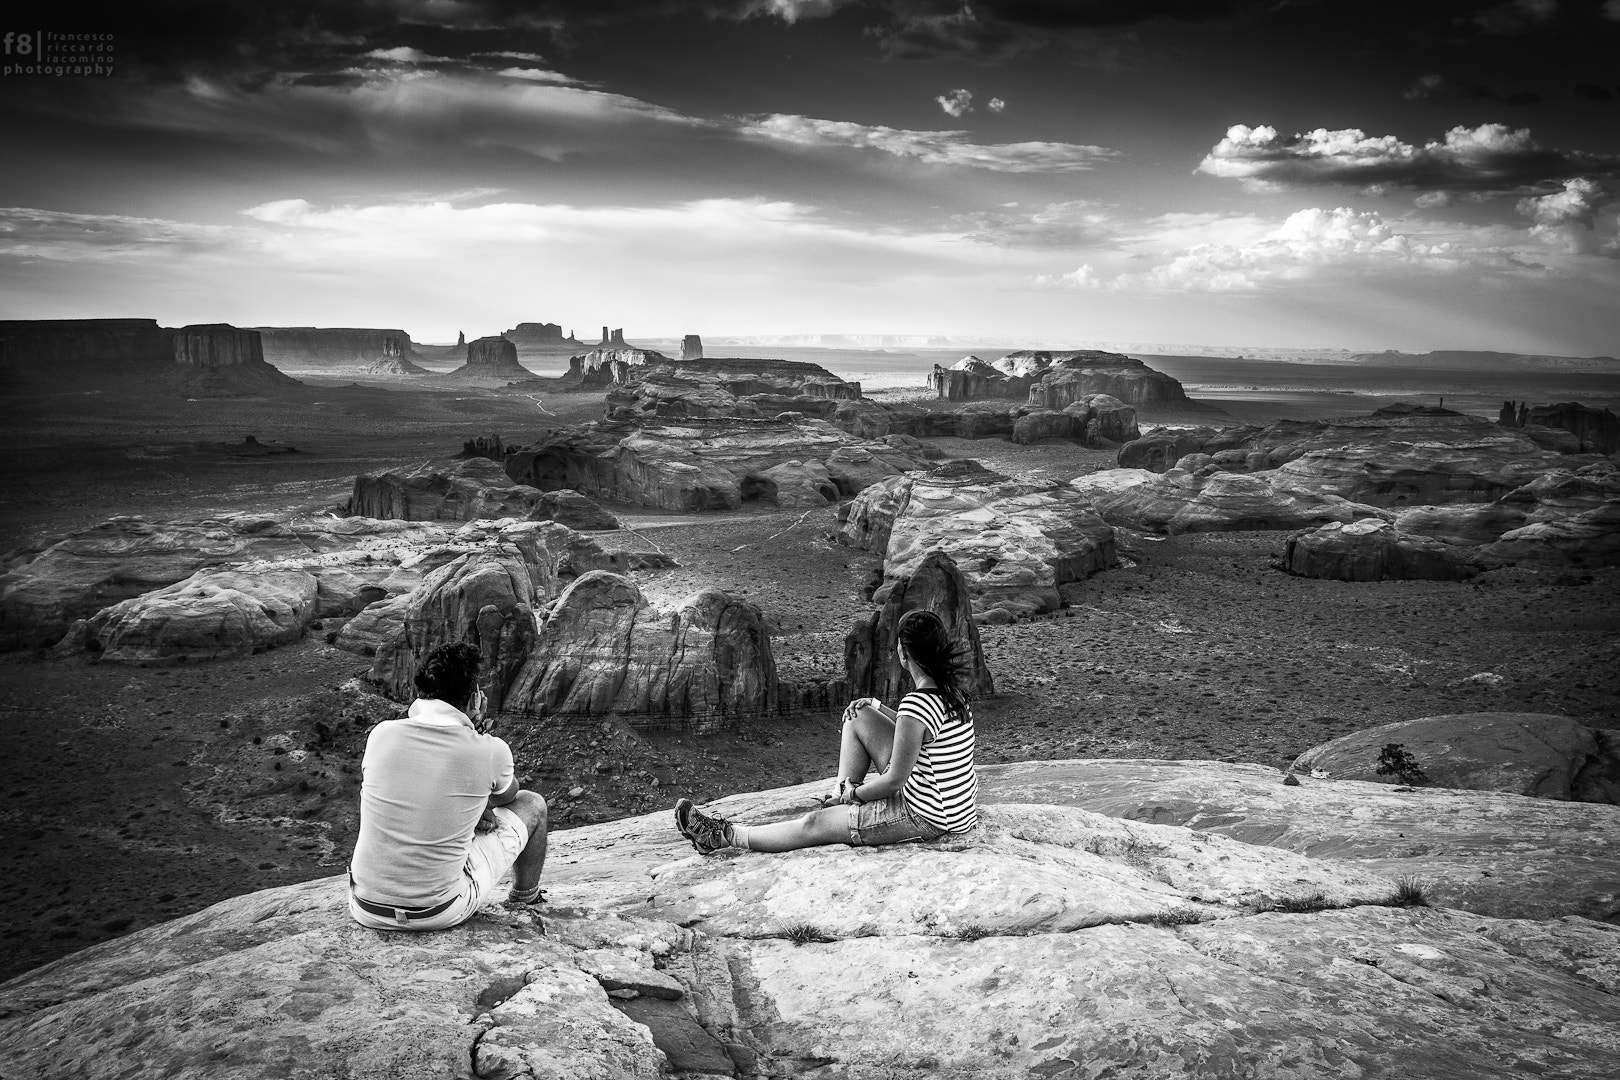 Photograph Admiring from the Hunt's Mesa by Francesco Riccardo Iacomino on 500px